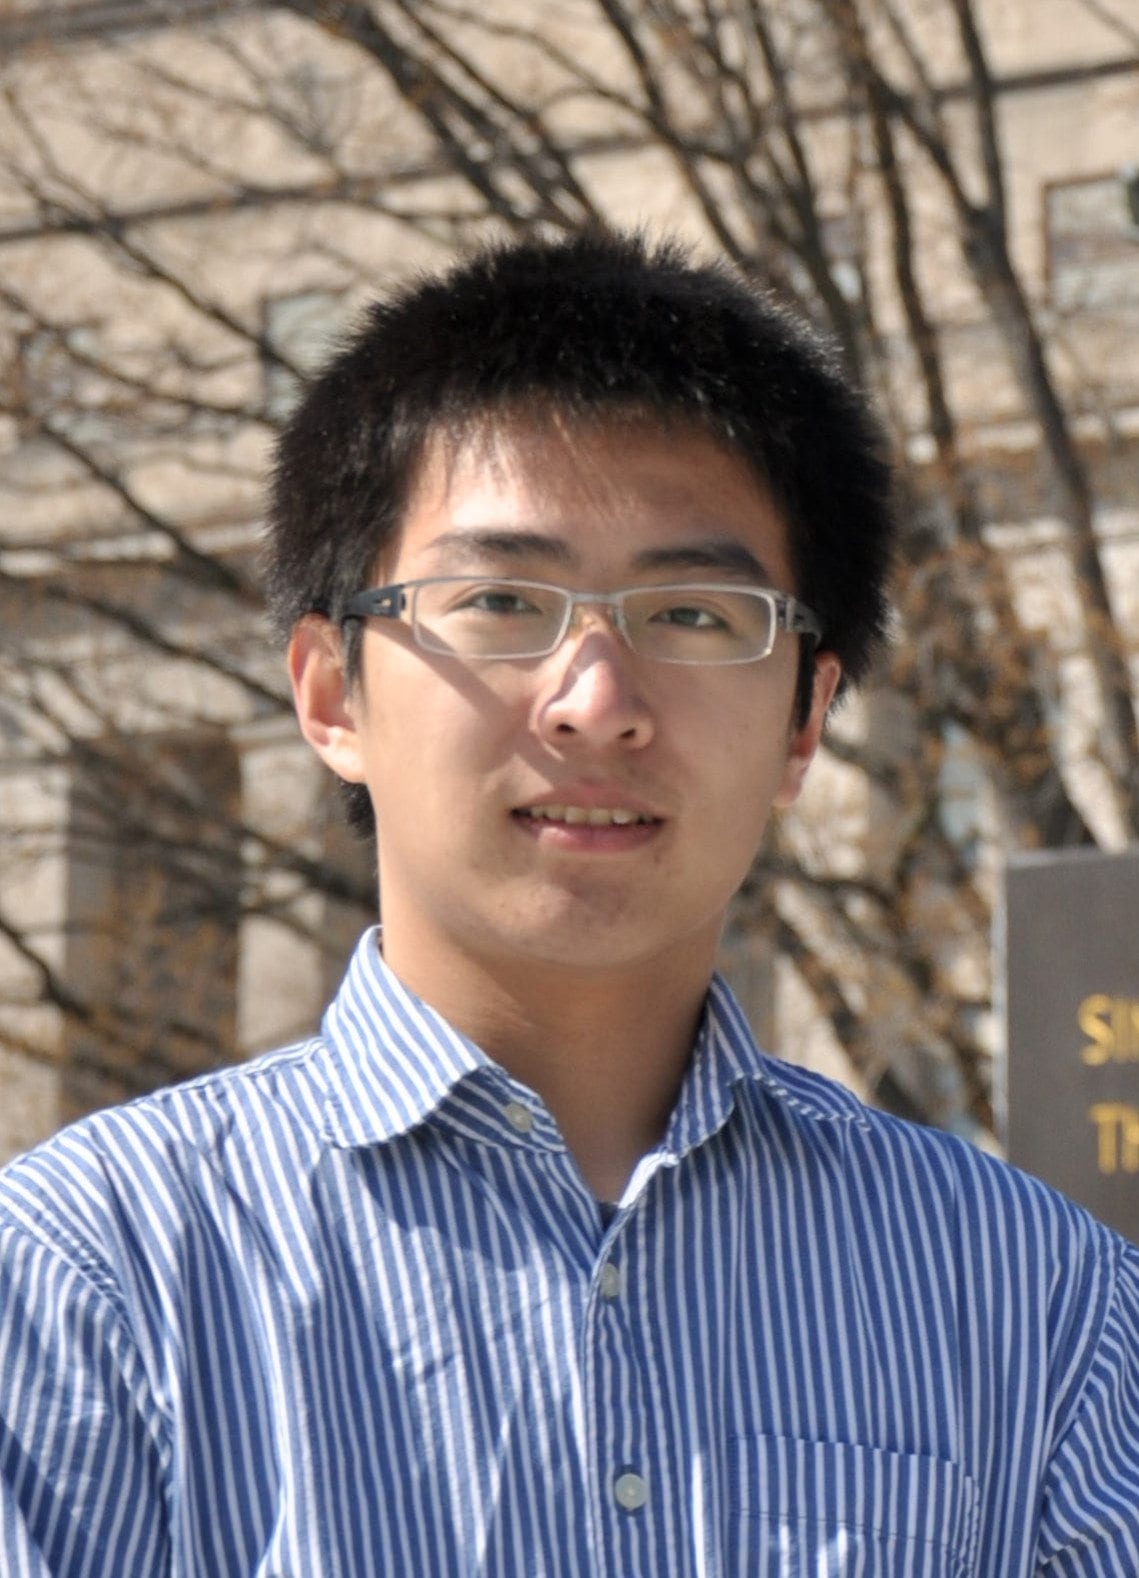 Liang Dai Awarded Prestigious NASA Einstein Postdoctoral Fellowship